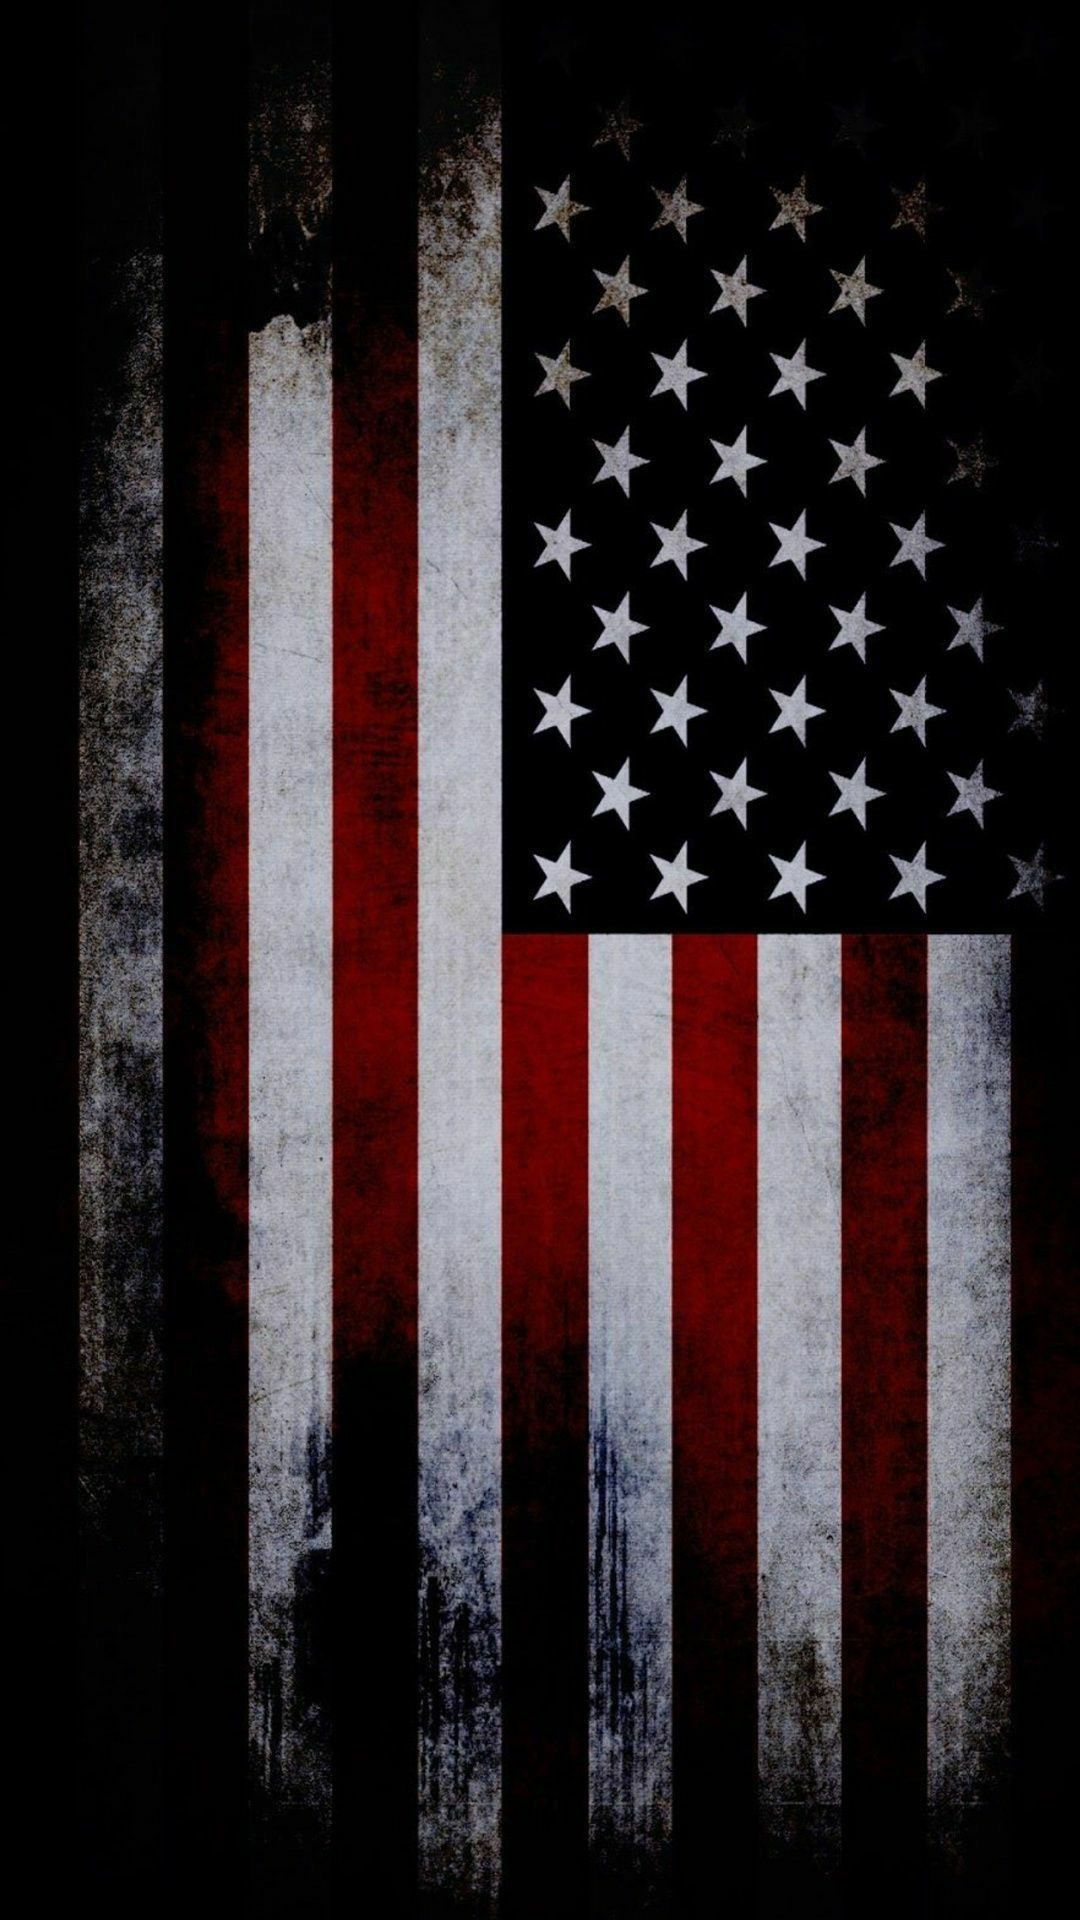 Camo American Flag Iphone Wallpaper In 2020 American Flag Wallpaper Iphone American Flag Wallpaper America Flag Wallpaper